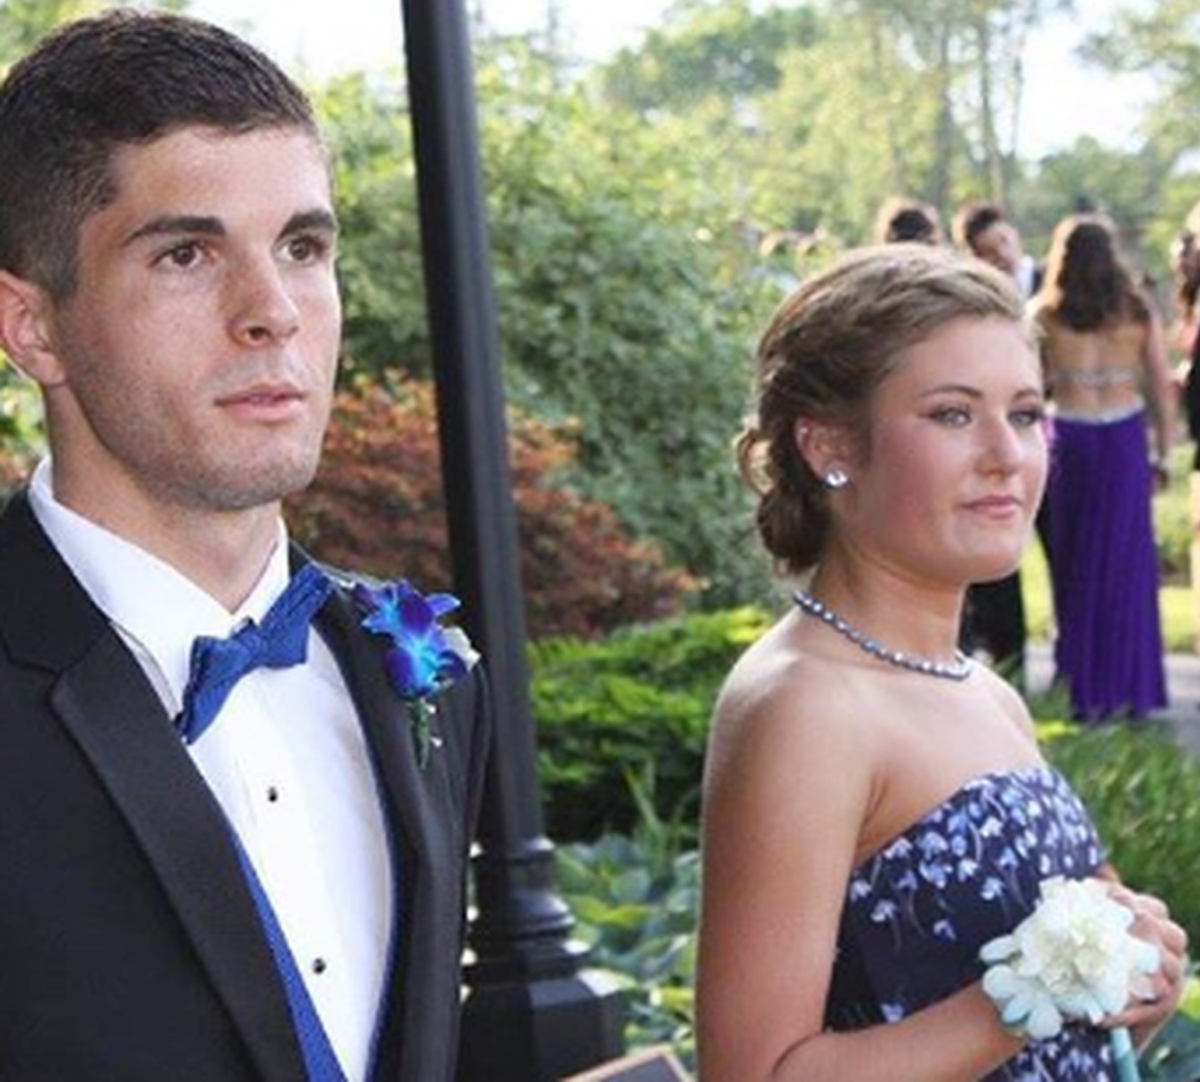 Christian Pulisic attending his senior prom in Hershey, Pennsylvania with his date at his side.